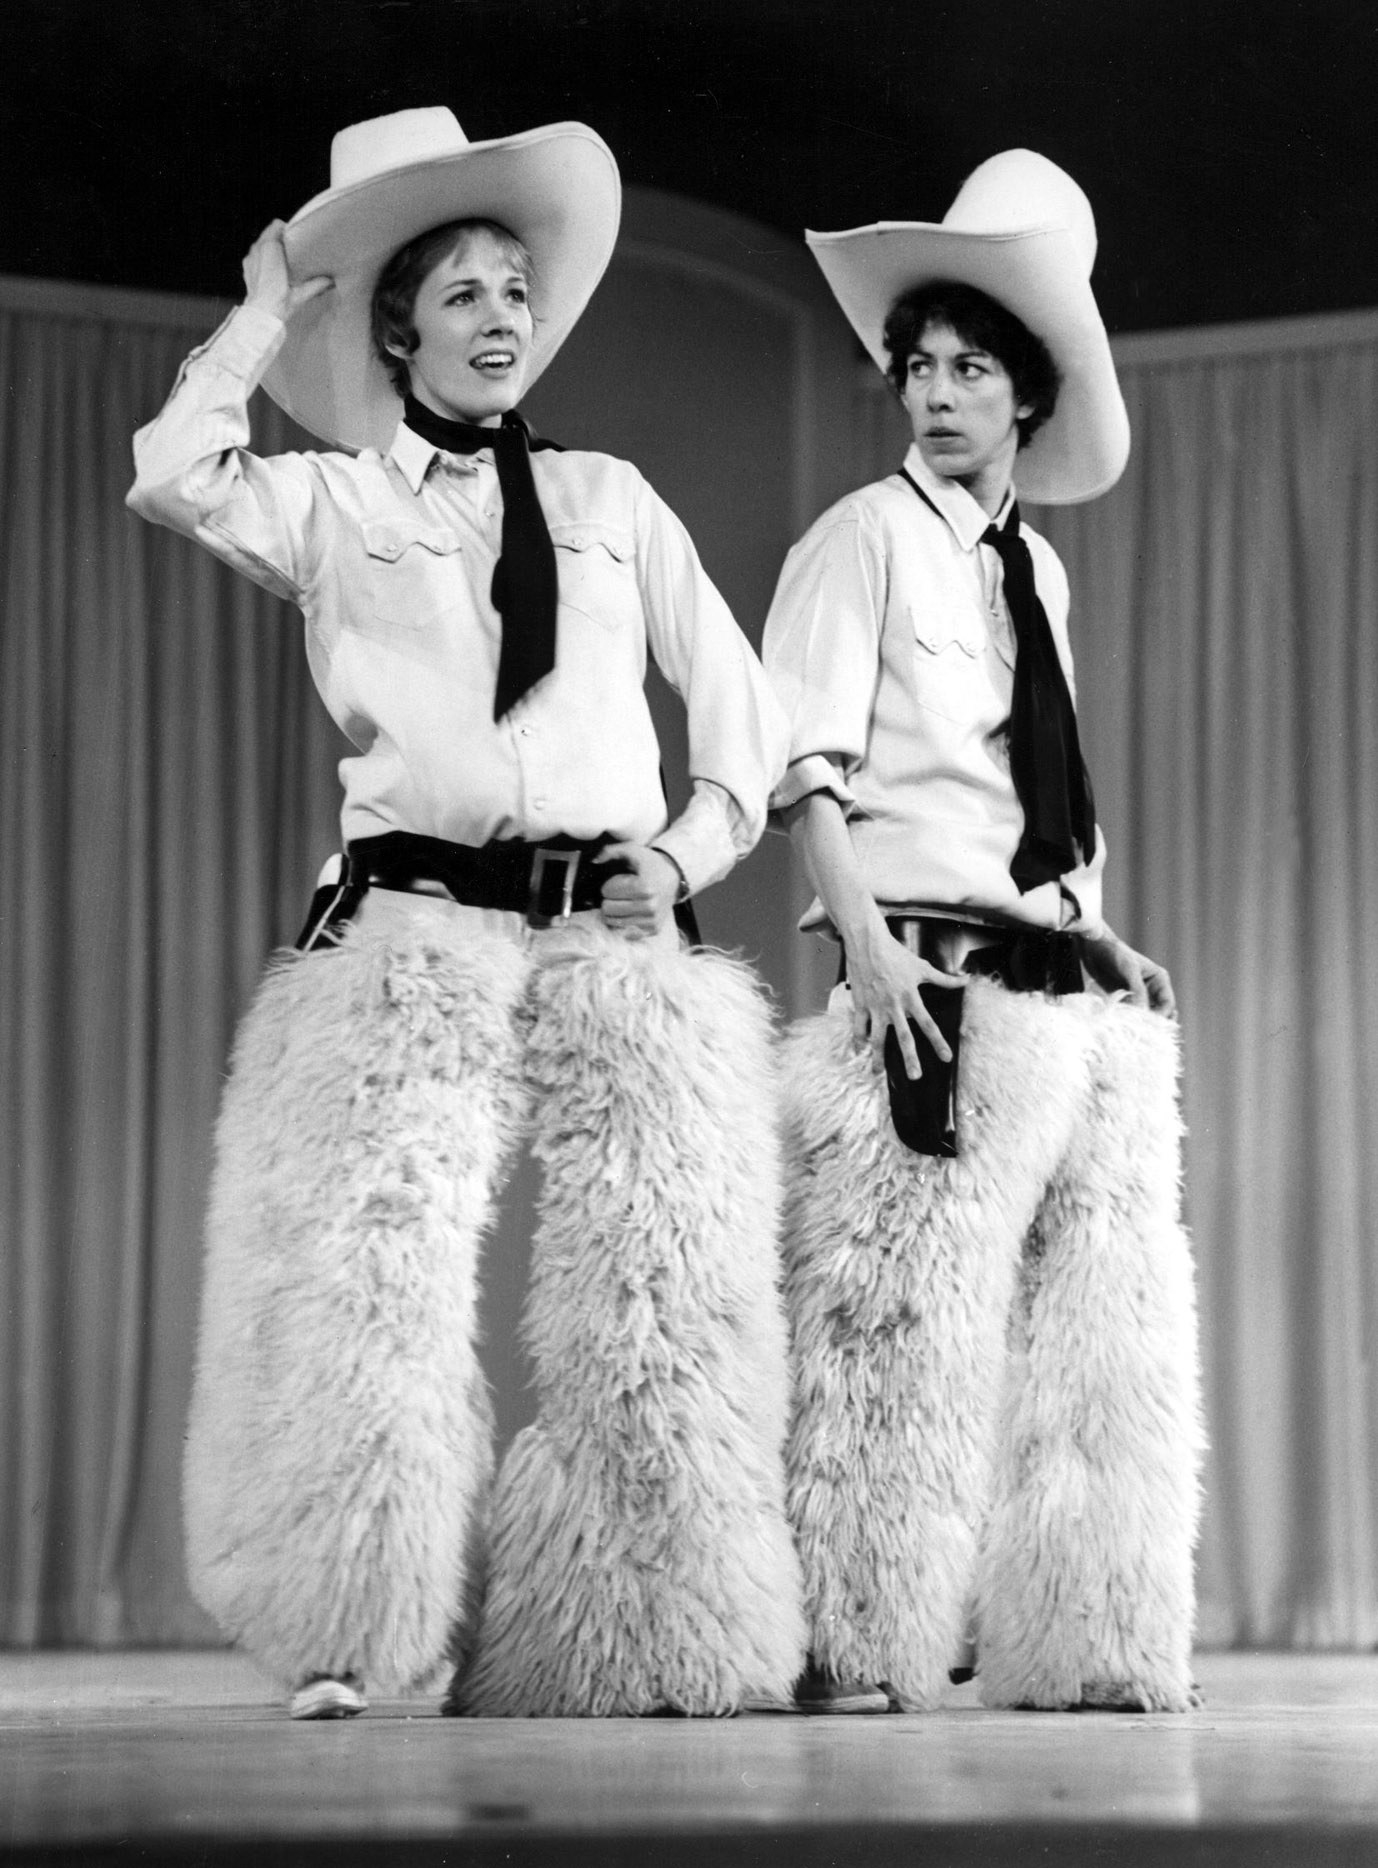 """Julie Andrews and Carol Burnett performing in cowboy outfits at their concert special """"Julie and Carol at Carnegie Hall"""" in 1962"""